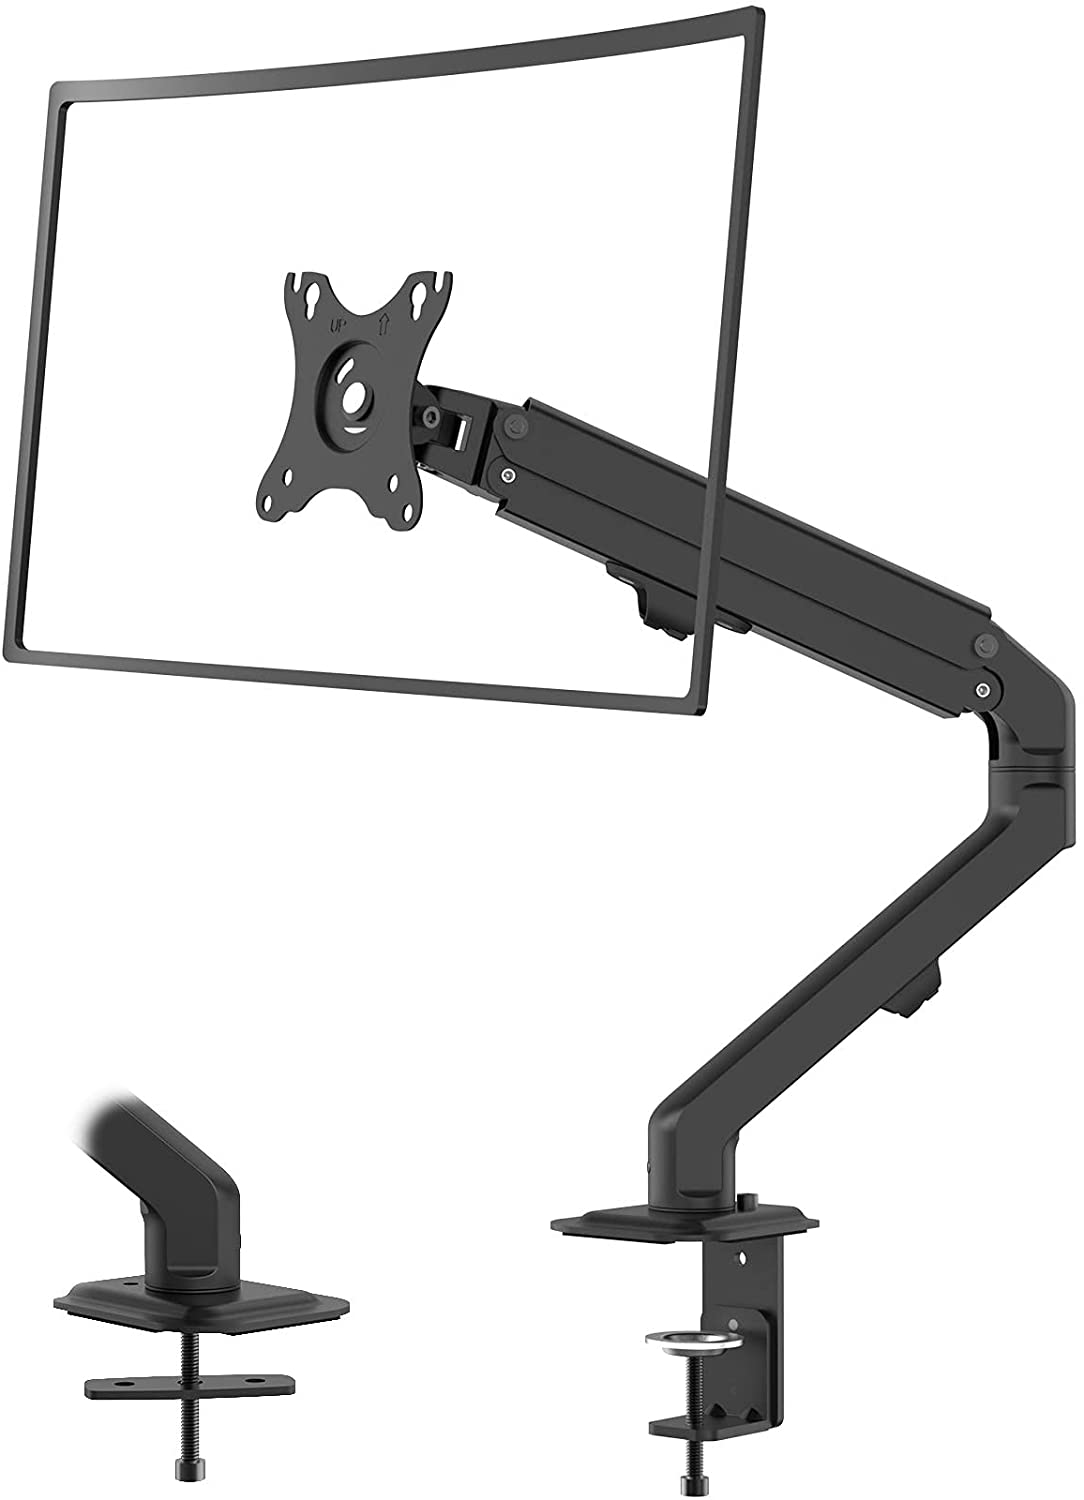 (EU EXCLUSIVE) PUTORSEN Premium PC Monitor Arm, Full Motion Mechanical Spring Arm for 17 -27  LCD LED Screens, Single Arm Desktop Clamp Mount, VESA 75 to 100mm, Weight up to 2-7kg